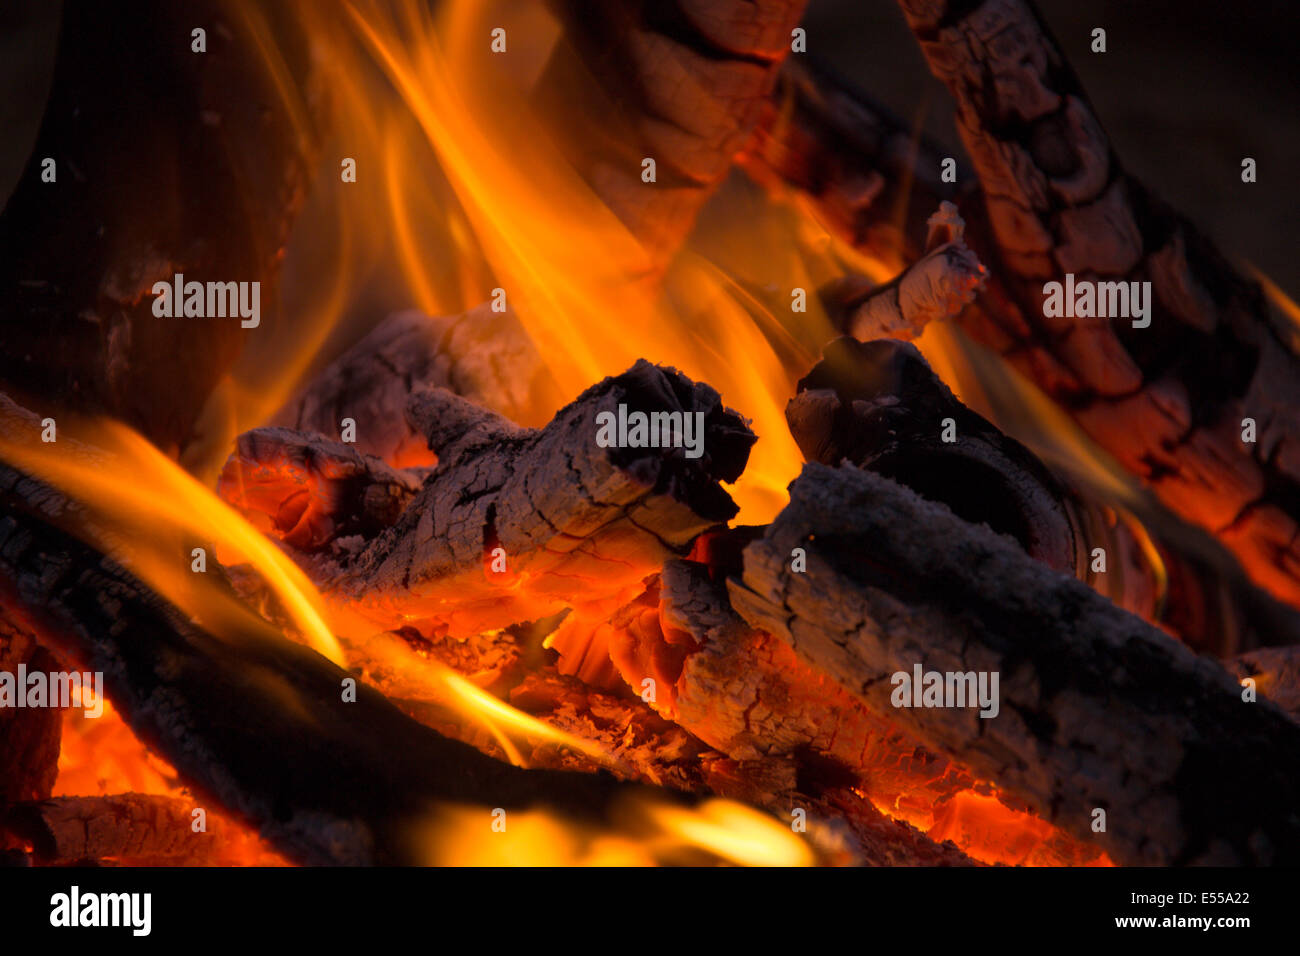 tree branches are burned in the fire - Stock Image